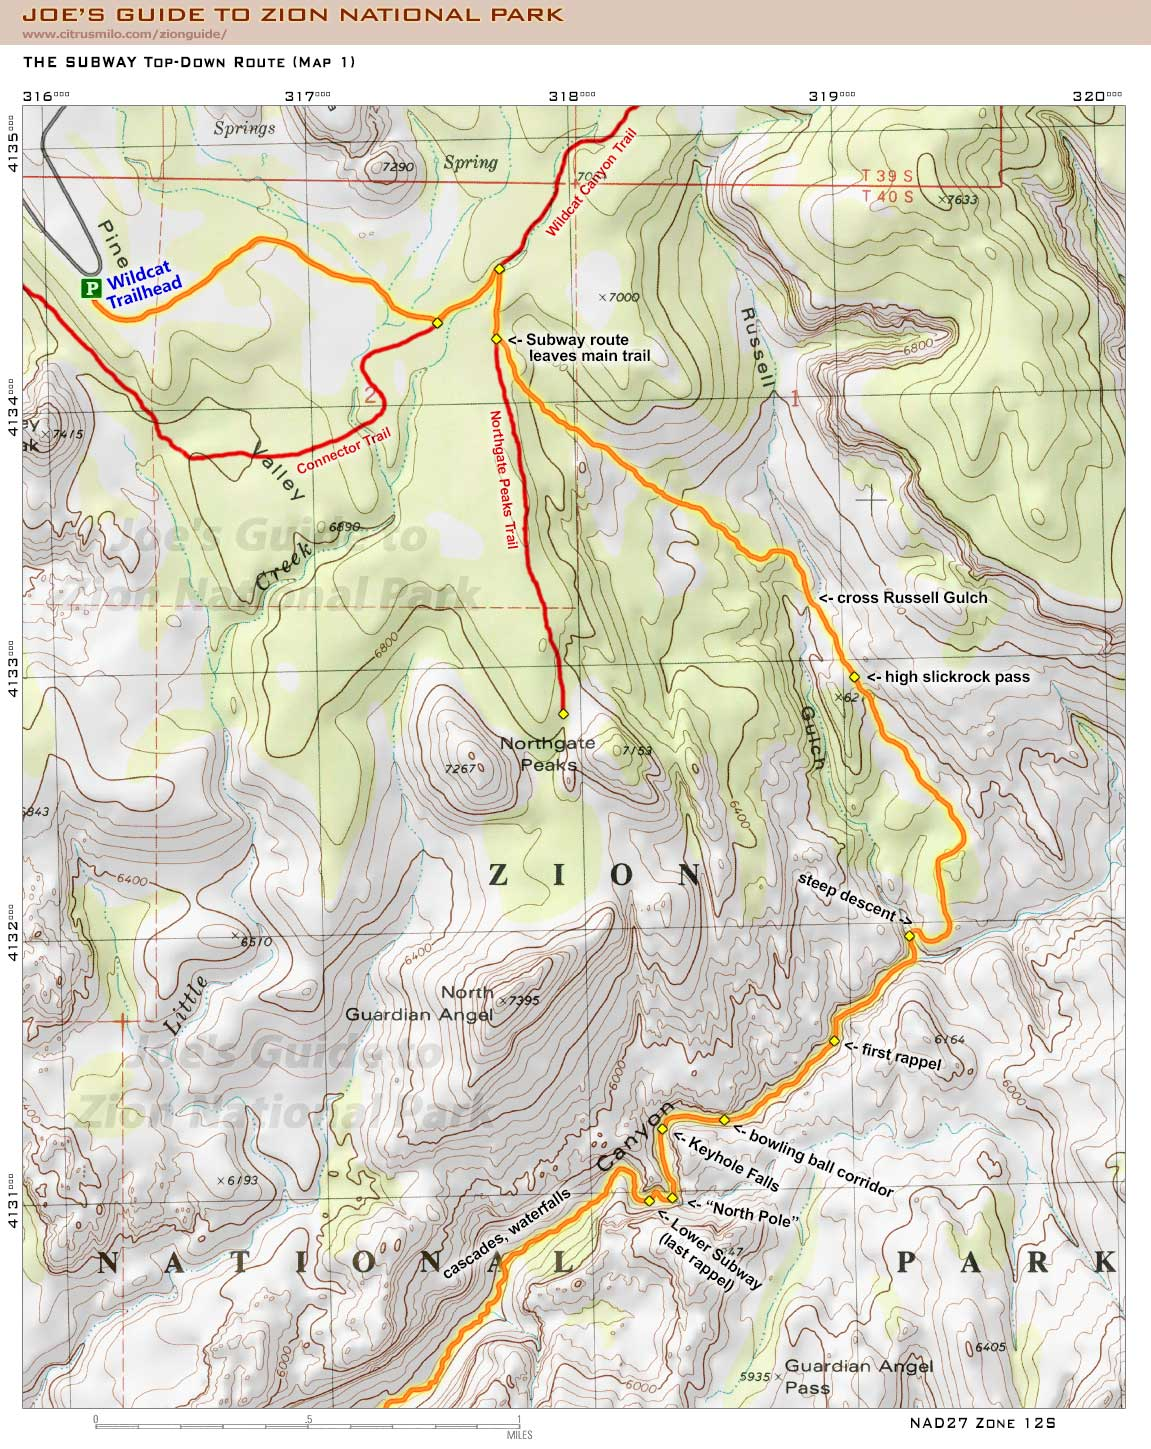 Zion National Park Subway Map